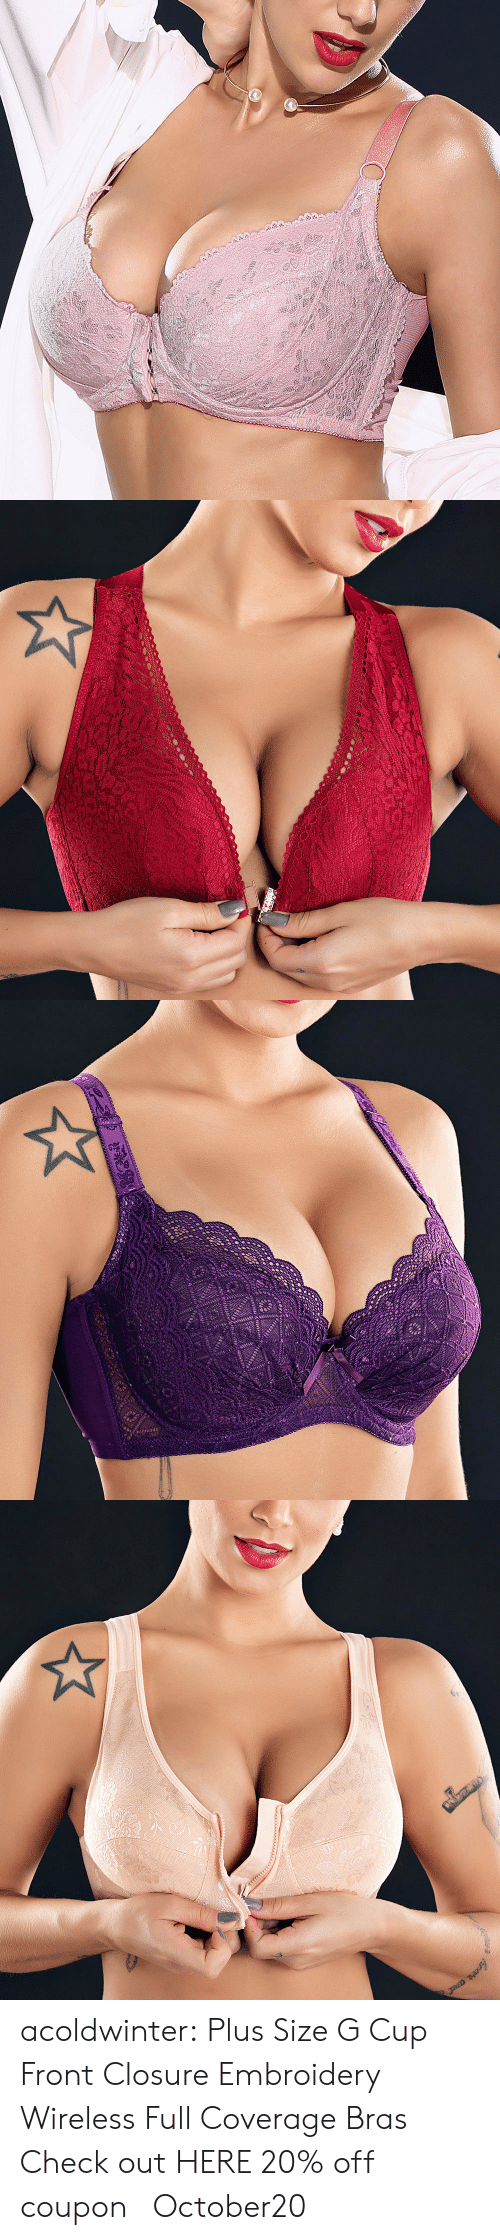 Tumblr, Blog, and Com: acoldwinter:   Plus Size G Cup Front Closure Embroidery Wireless Full Coverage Bras   Check out HERE   20% off coupon :October20